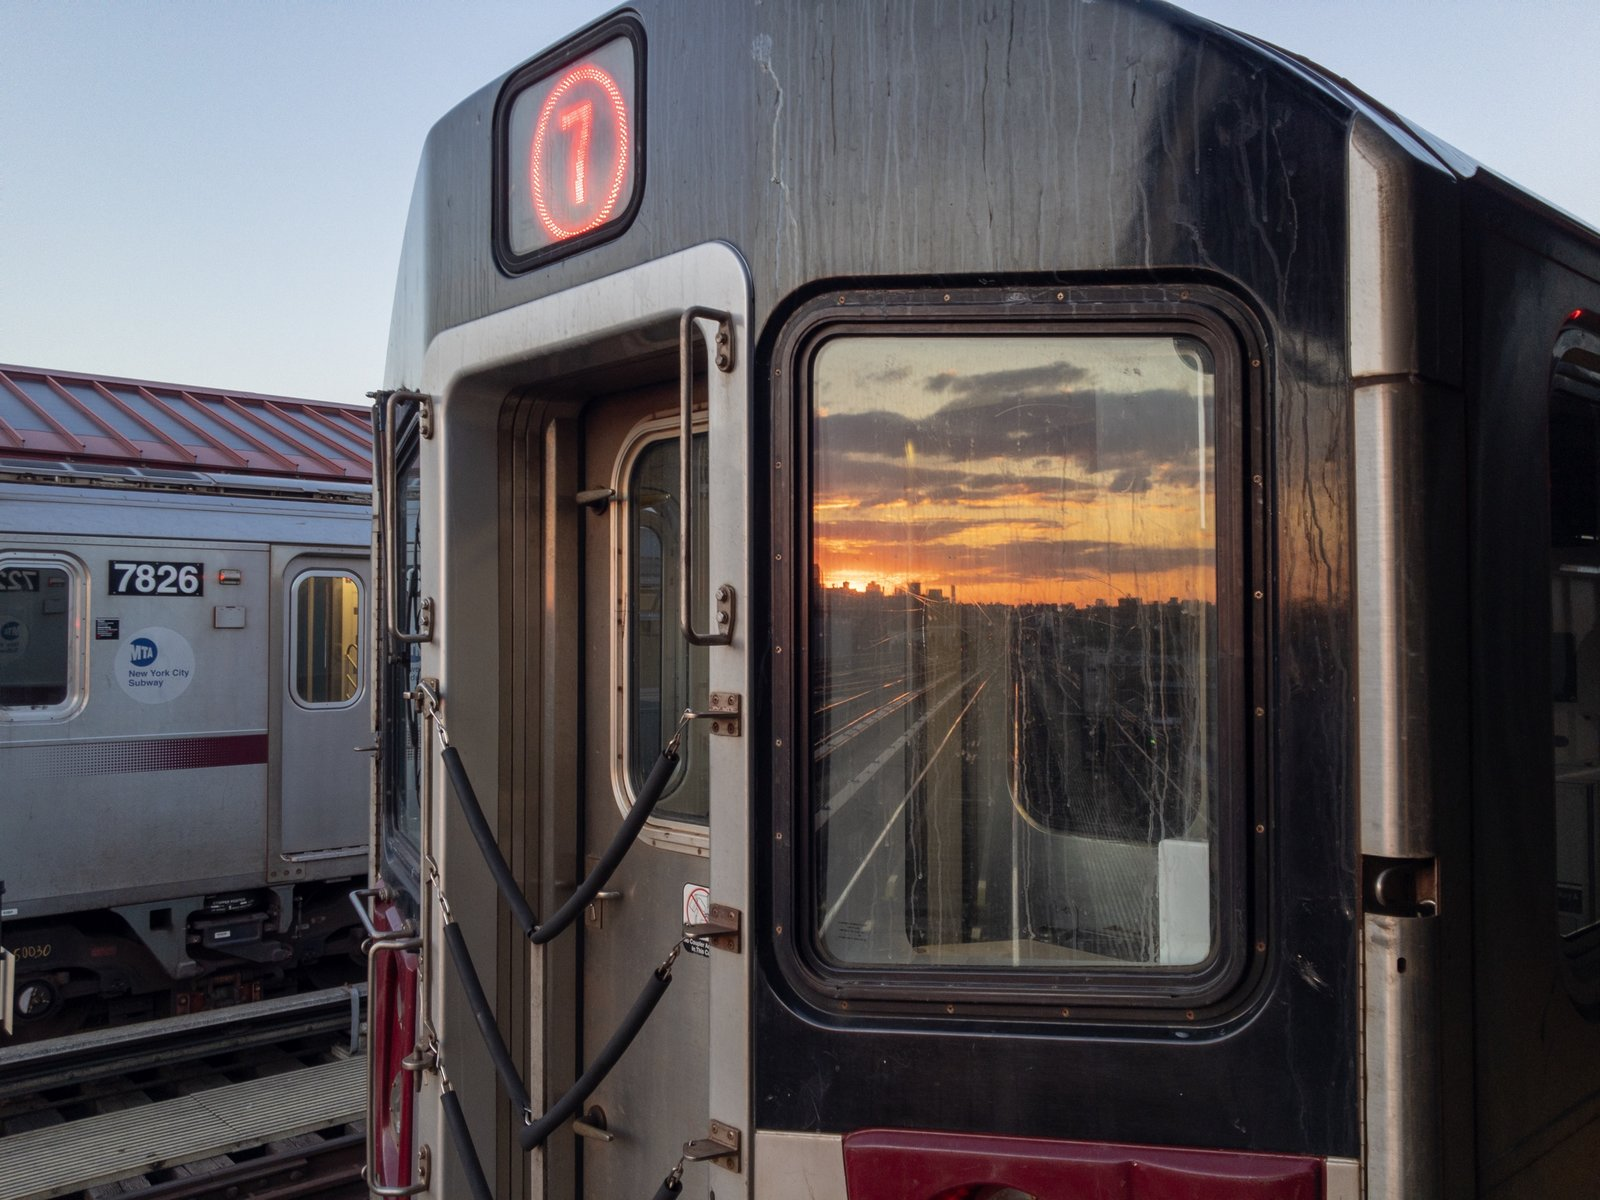 A 7 train reflecting the sunset